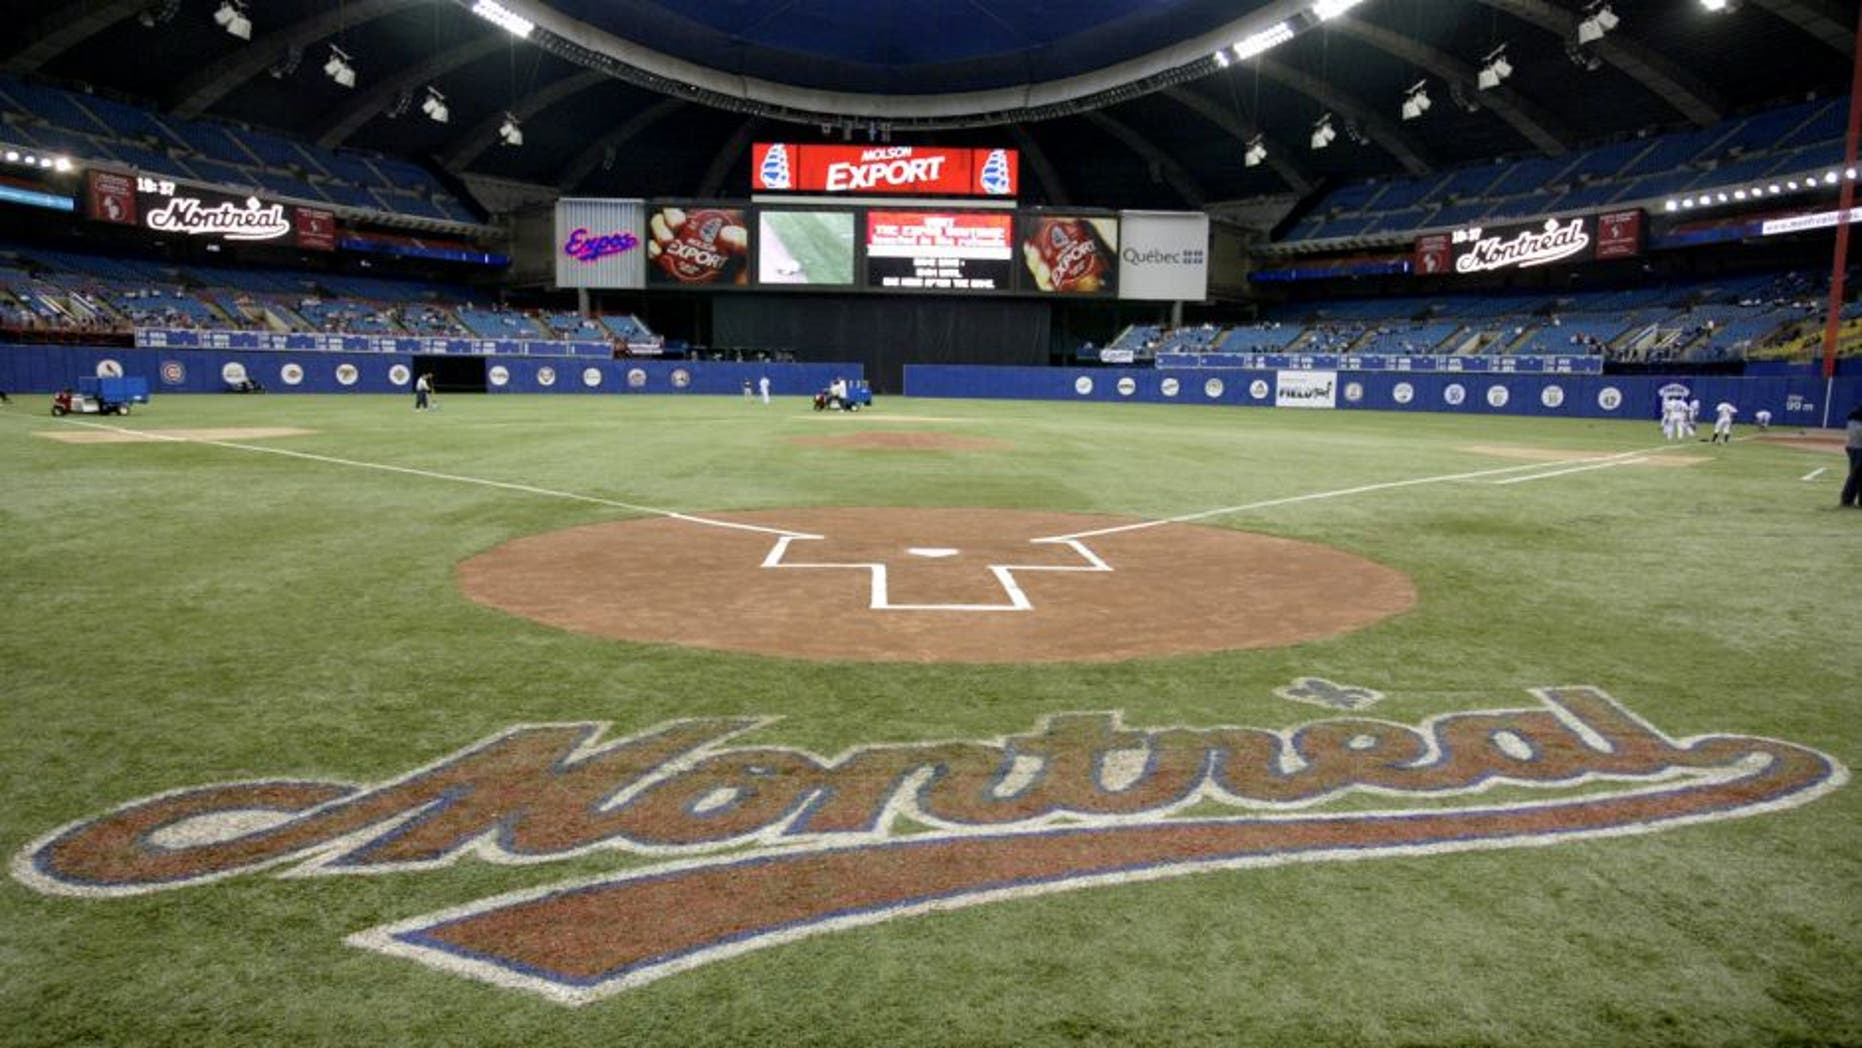 MONTREAL - SEPTEMBER 29: Olympic Stadium before the final Expos home game ever on September 29, 2004 in Montreal, Quebec, Canada. The Florida Marlins defeated the Expos 9-1. (Photo by David Boily/MLB Photos via Getty Images)